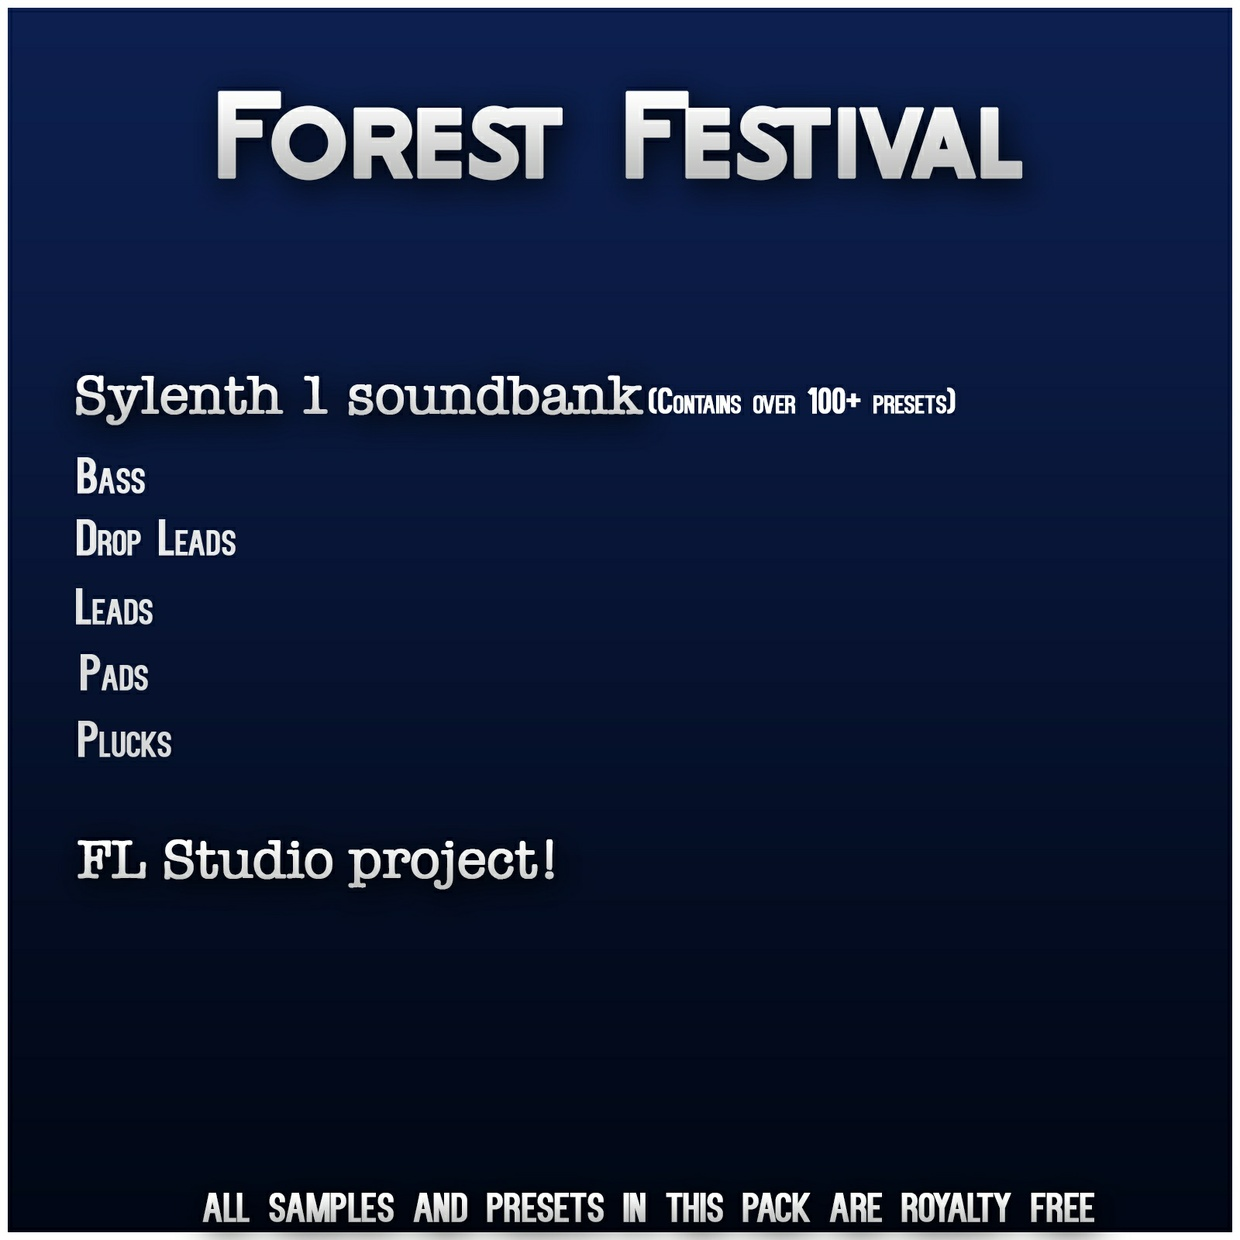 Forest Festival Soundbank